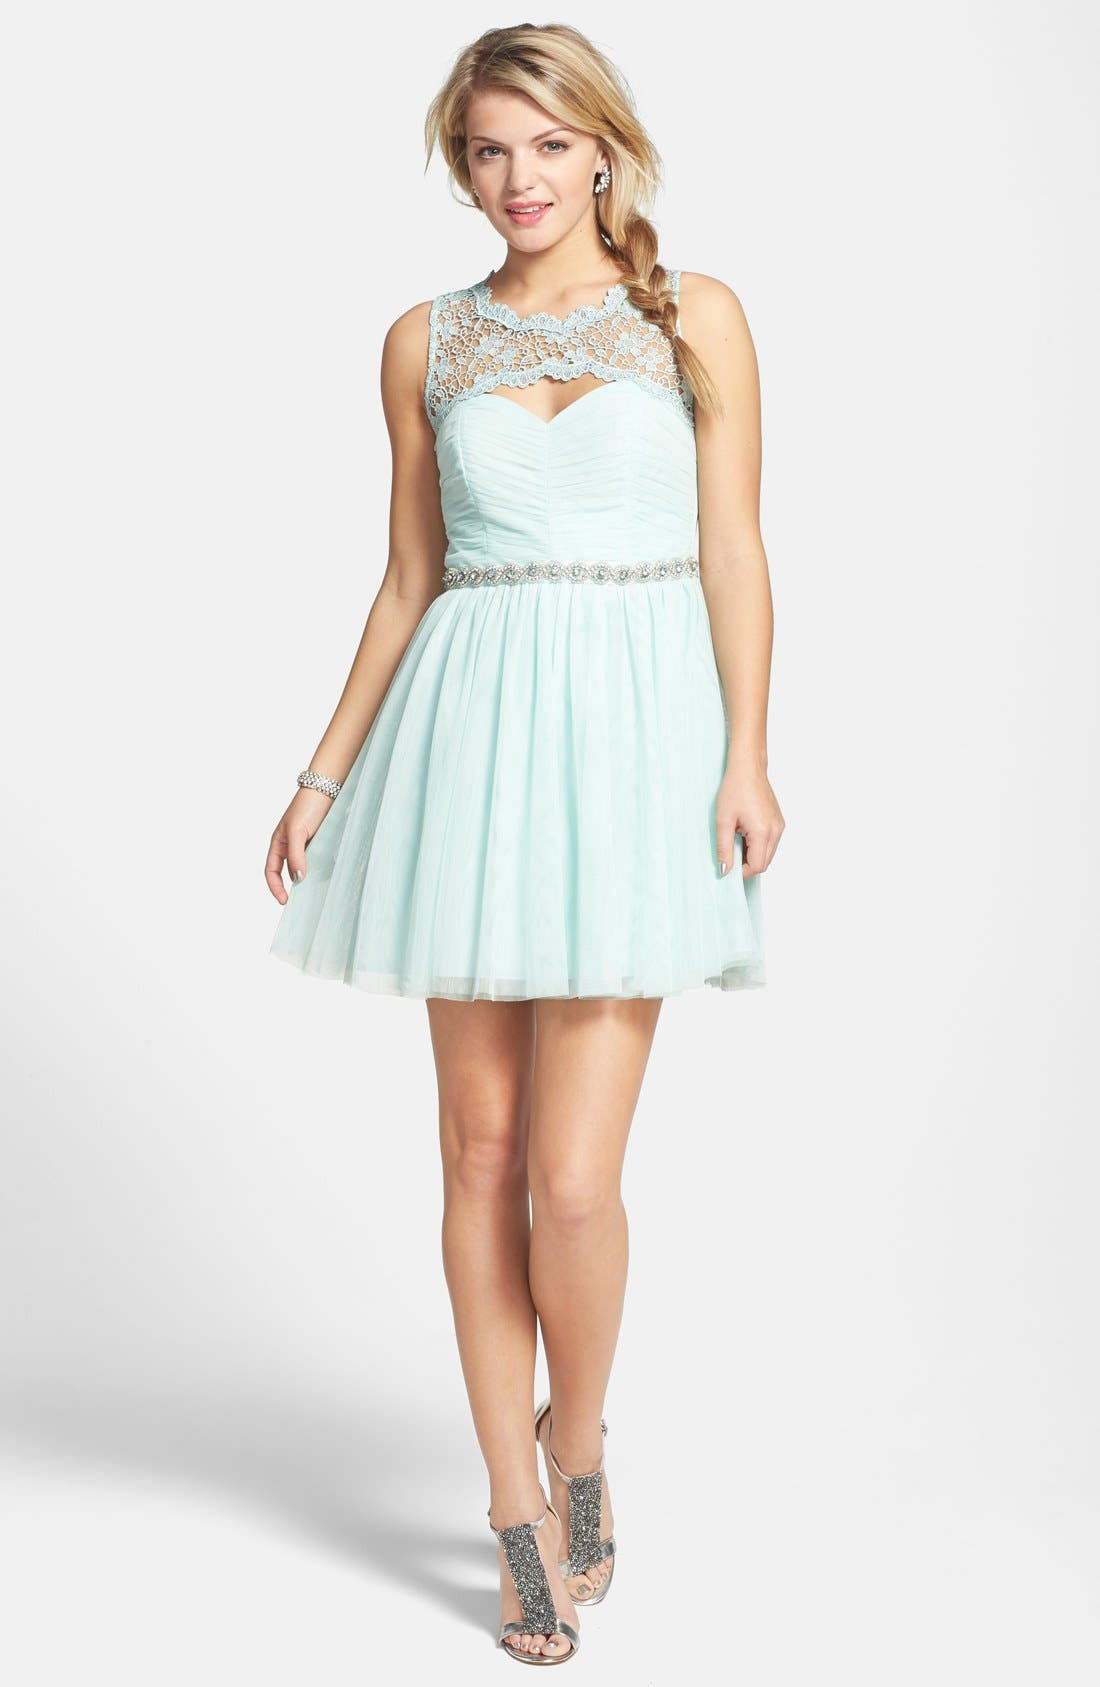 Alternate Image 1 Selected - Sequin Hearts Embellished Dress (Juniors)